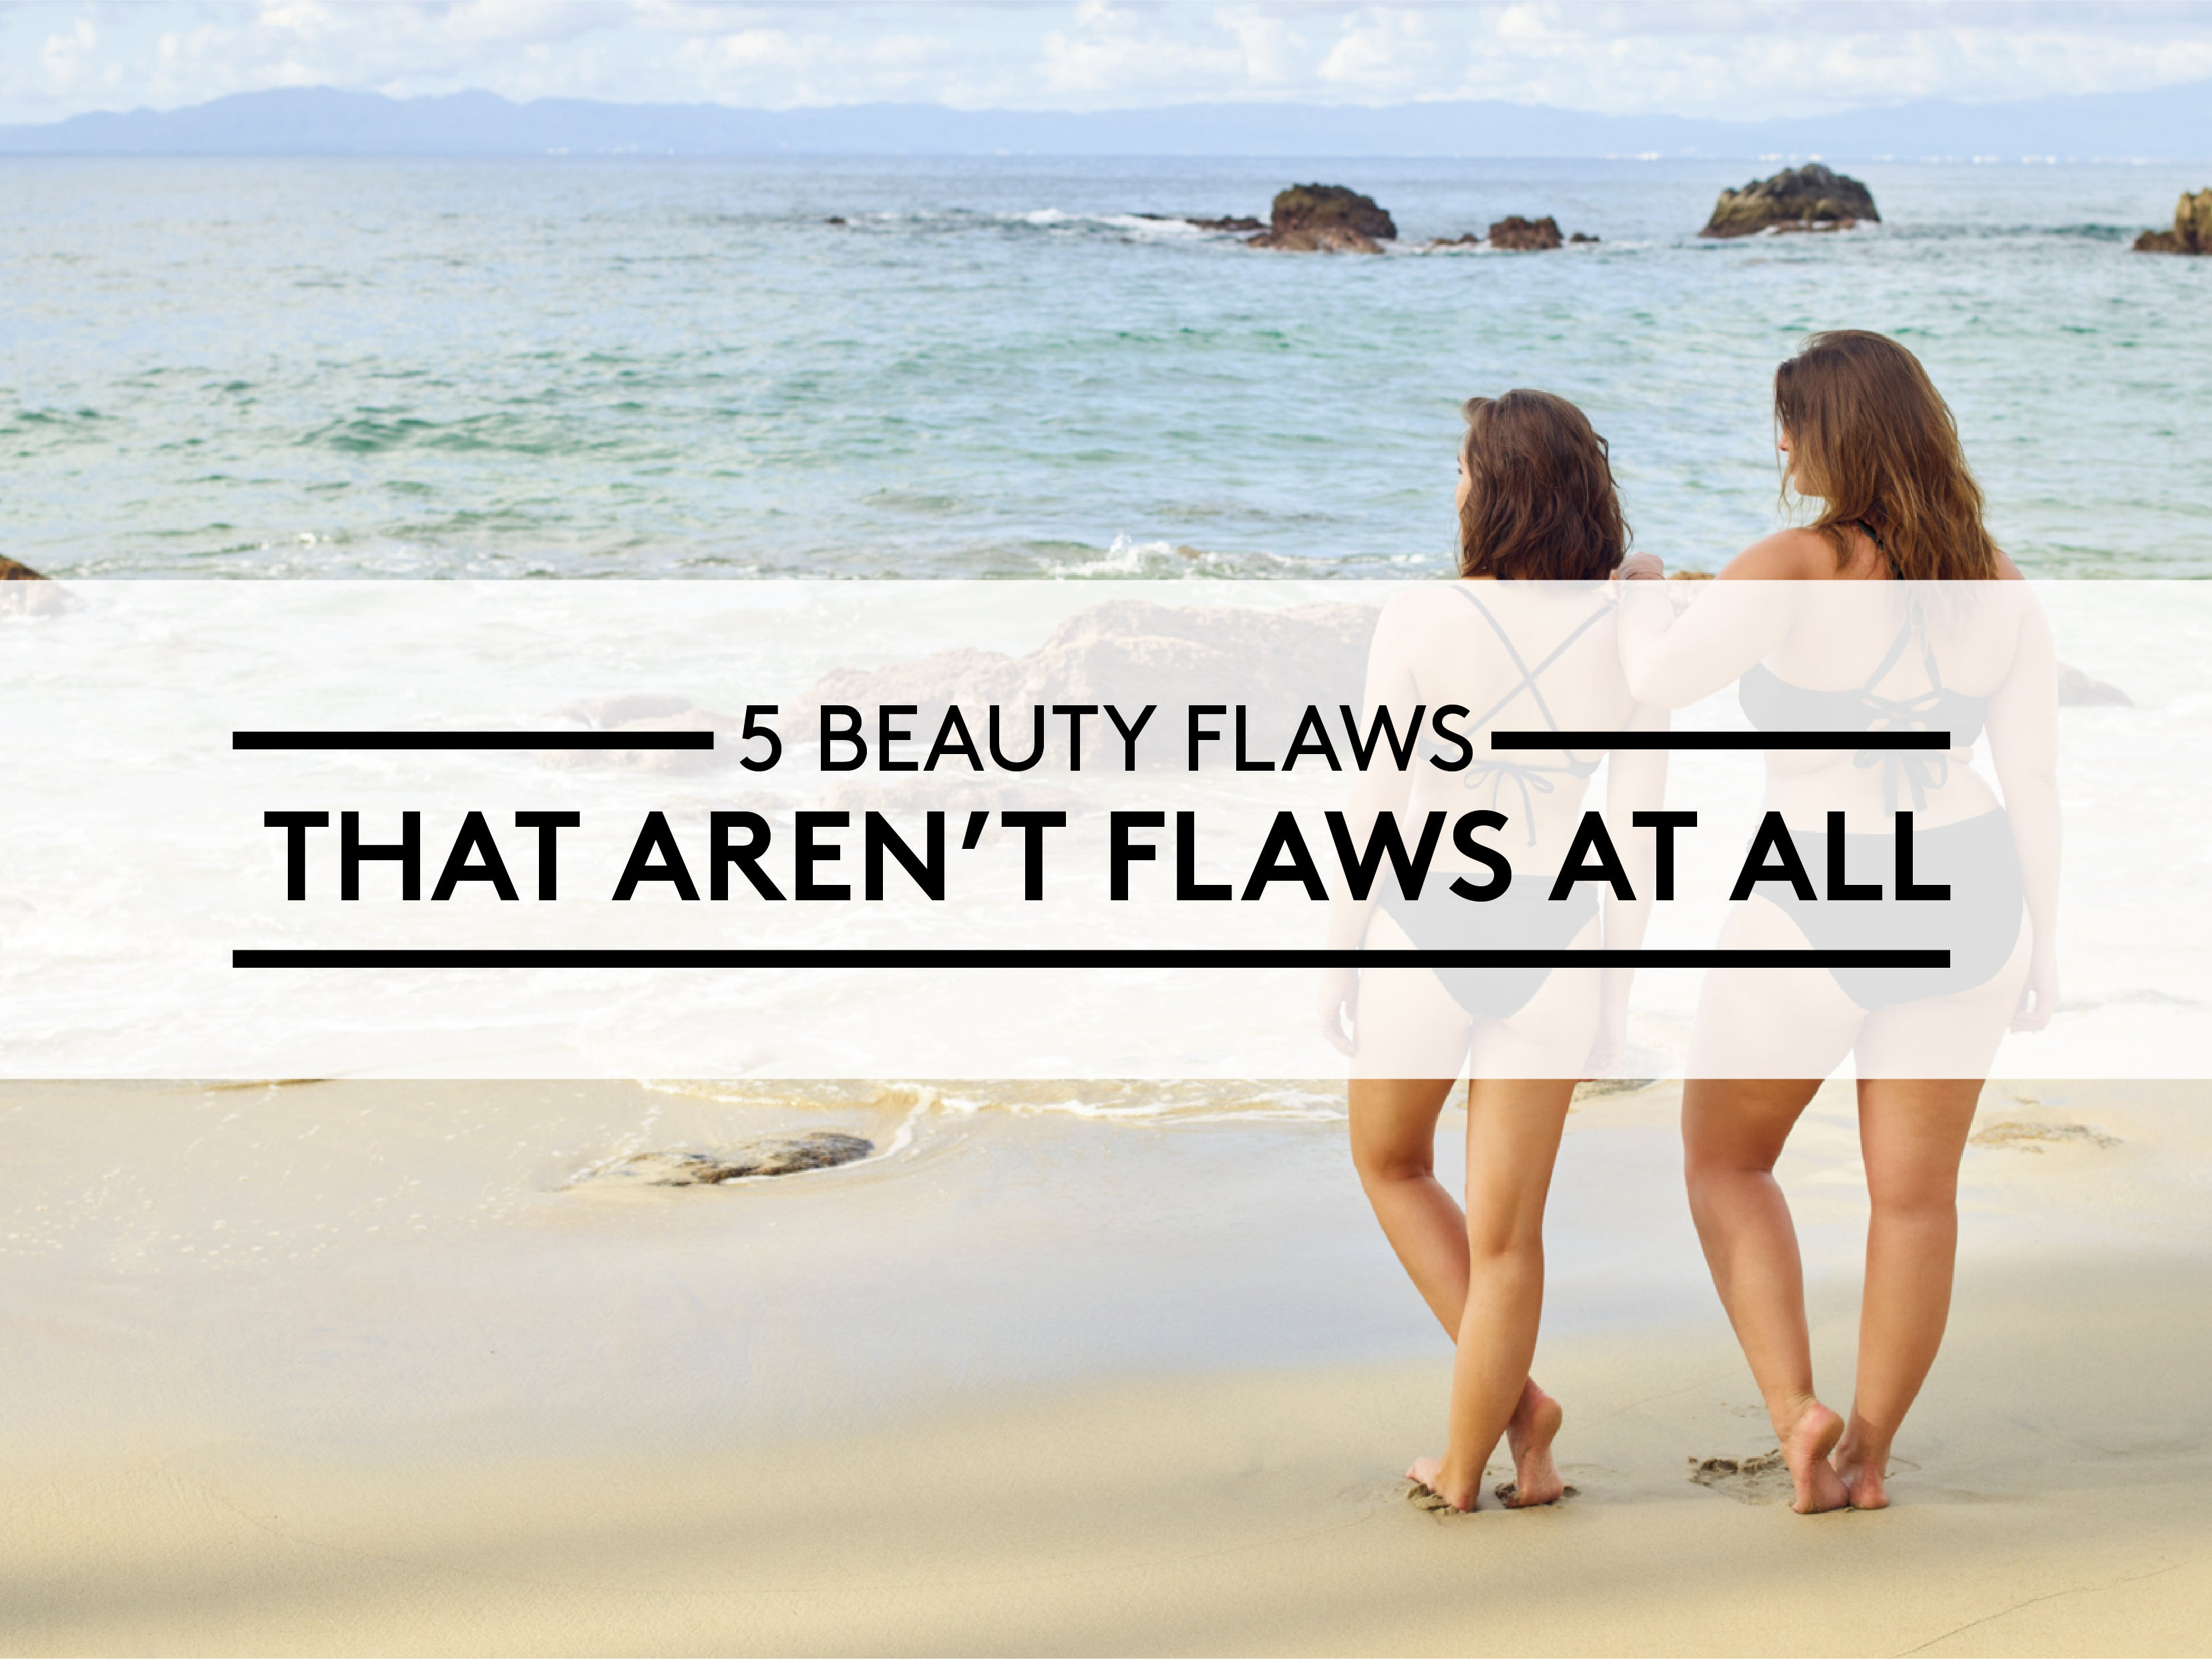 5 Beauty Flaws That Aren't Flaws at All